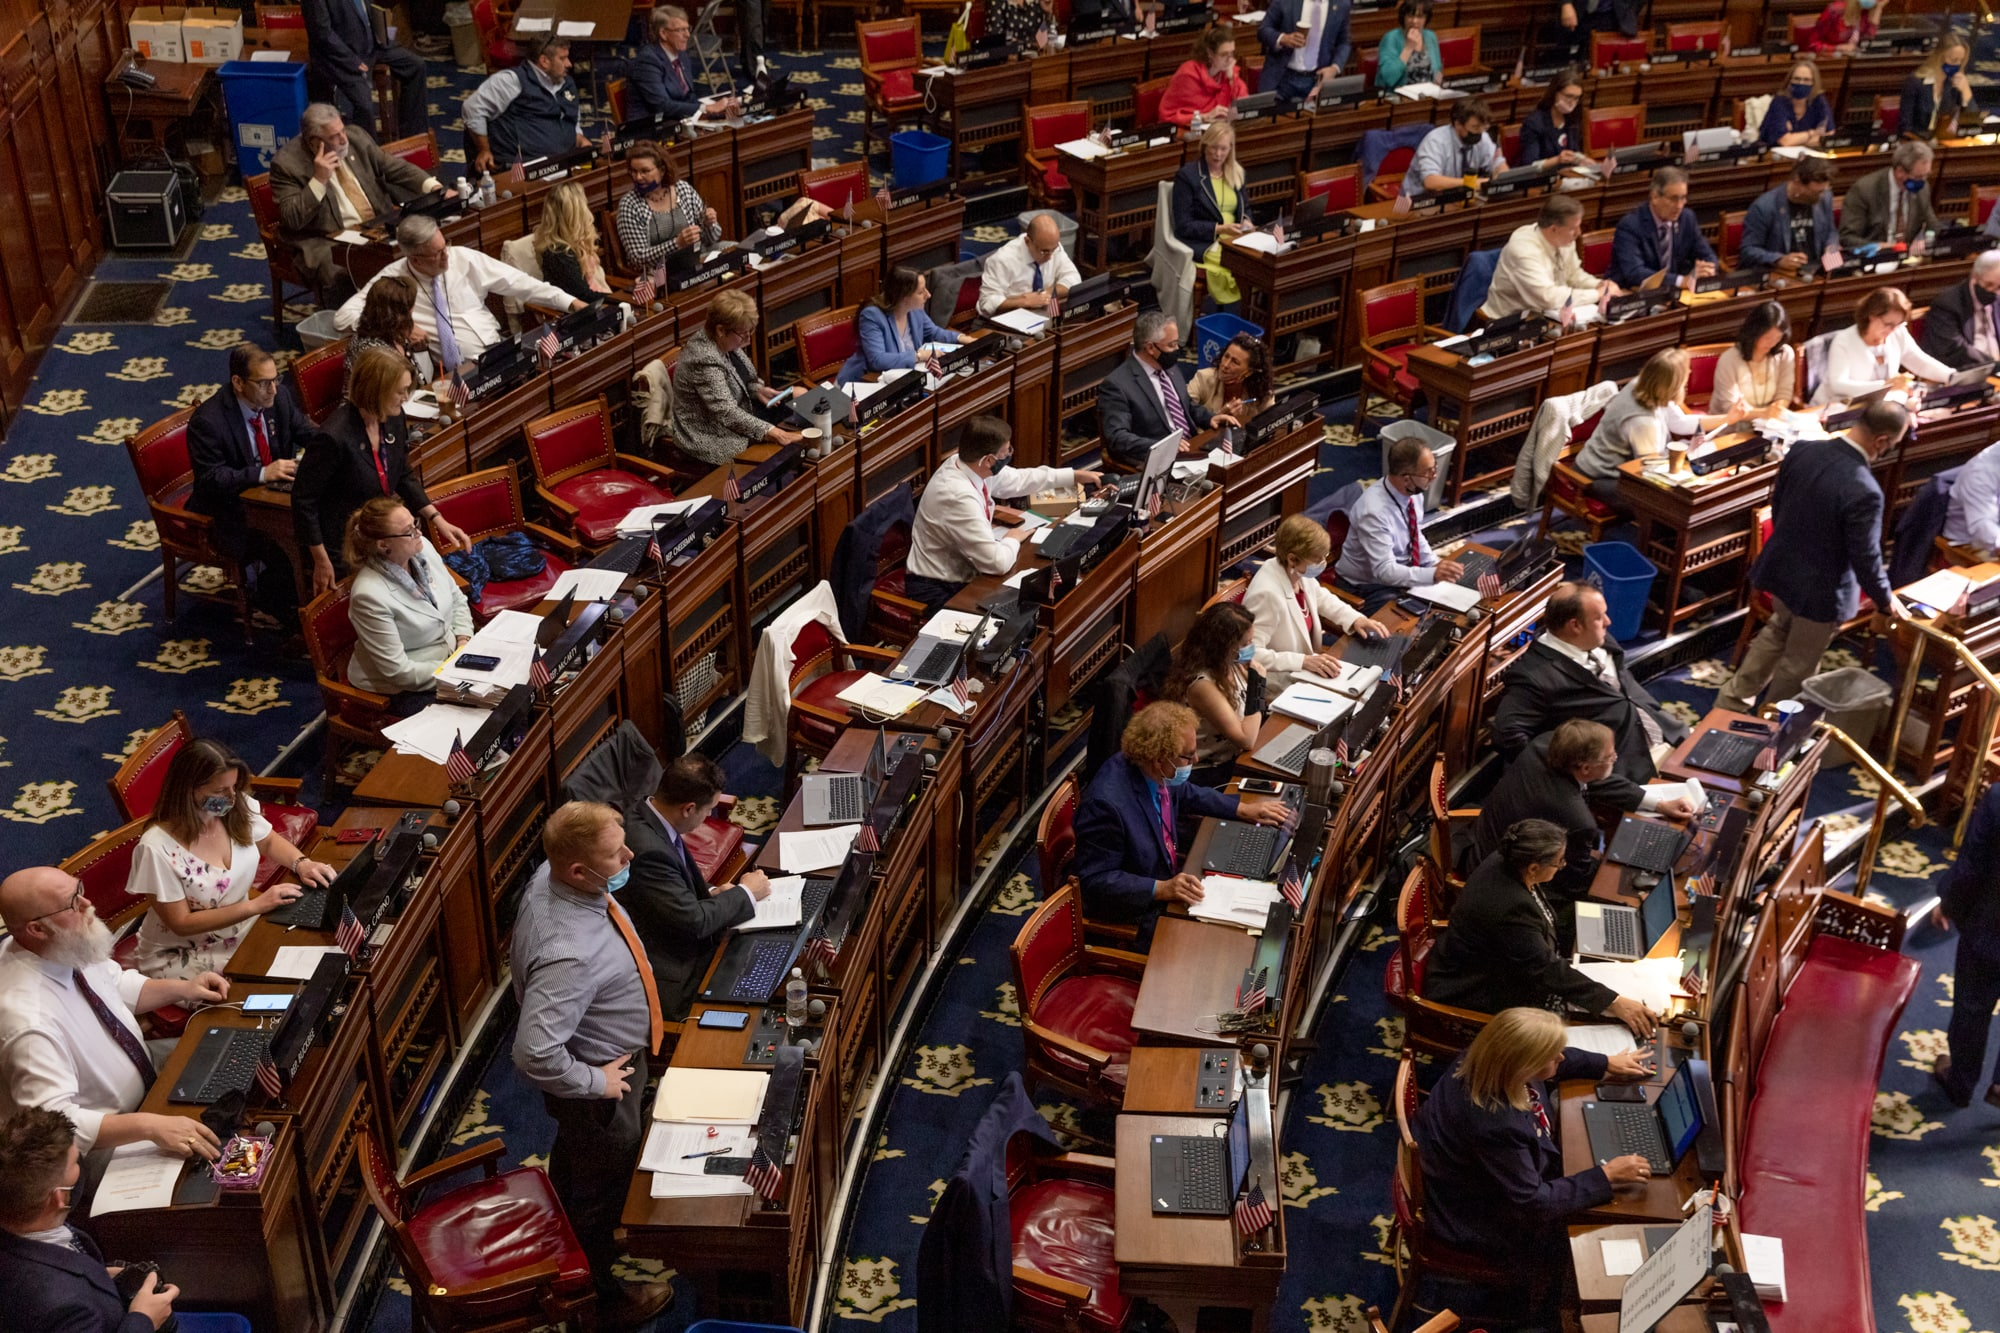 Photo essay: The Capitol comes to life on the last day of the session